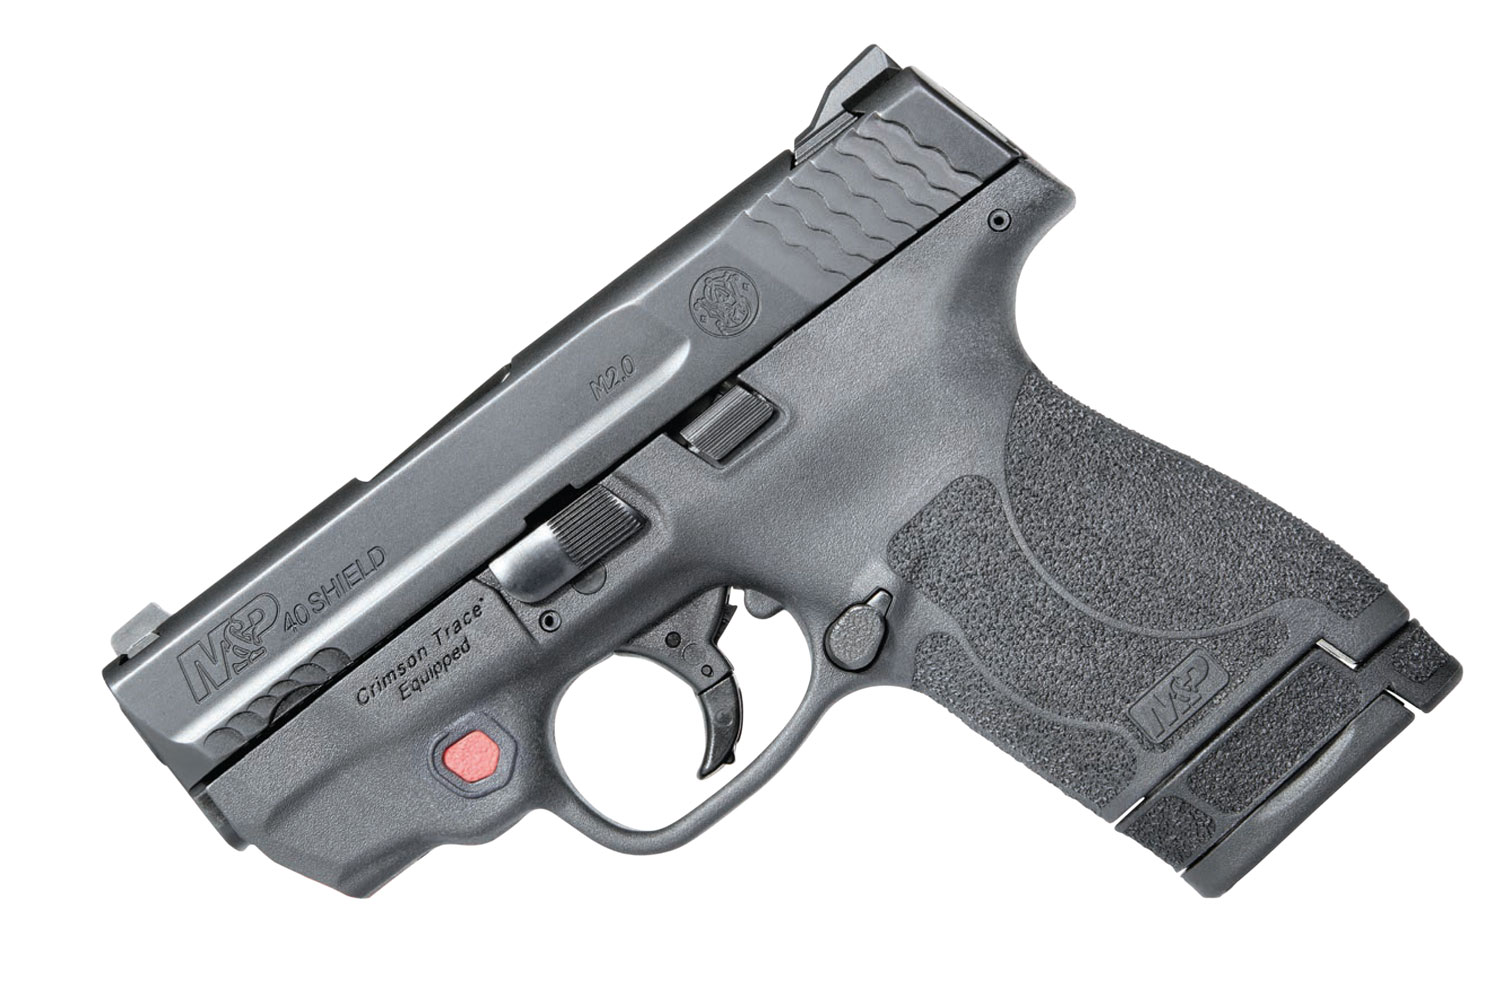 Smith & Wesson 11674 M&P 40 Shield M2.0 with Crimson Trace Red Laser Double 40 Smith & Wesson (S&W) 3.1